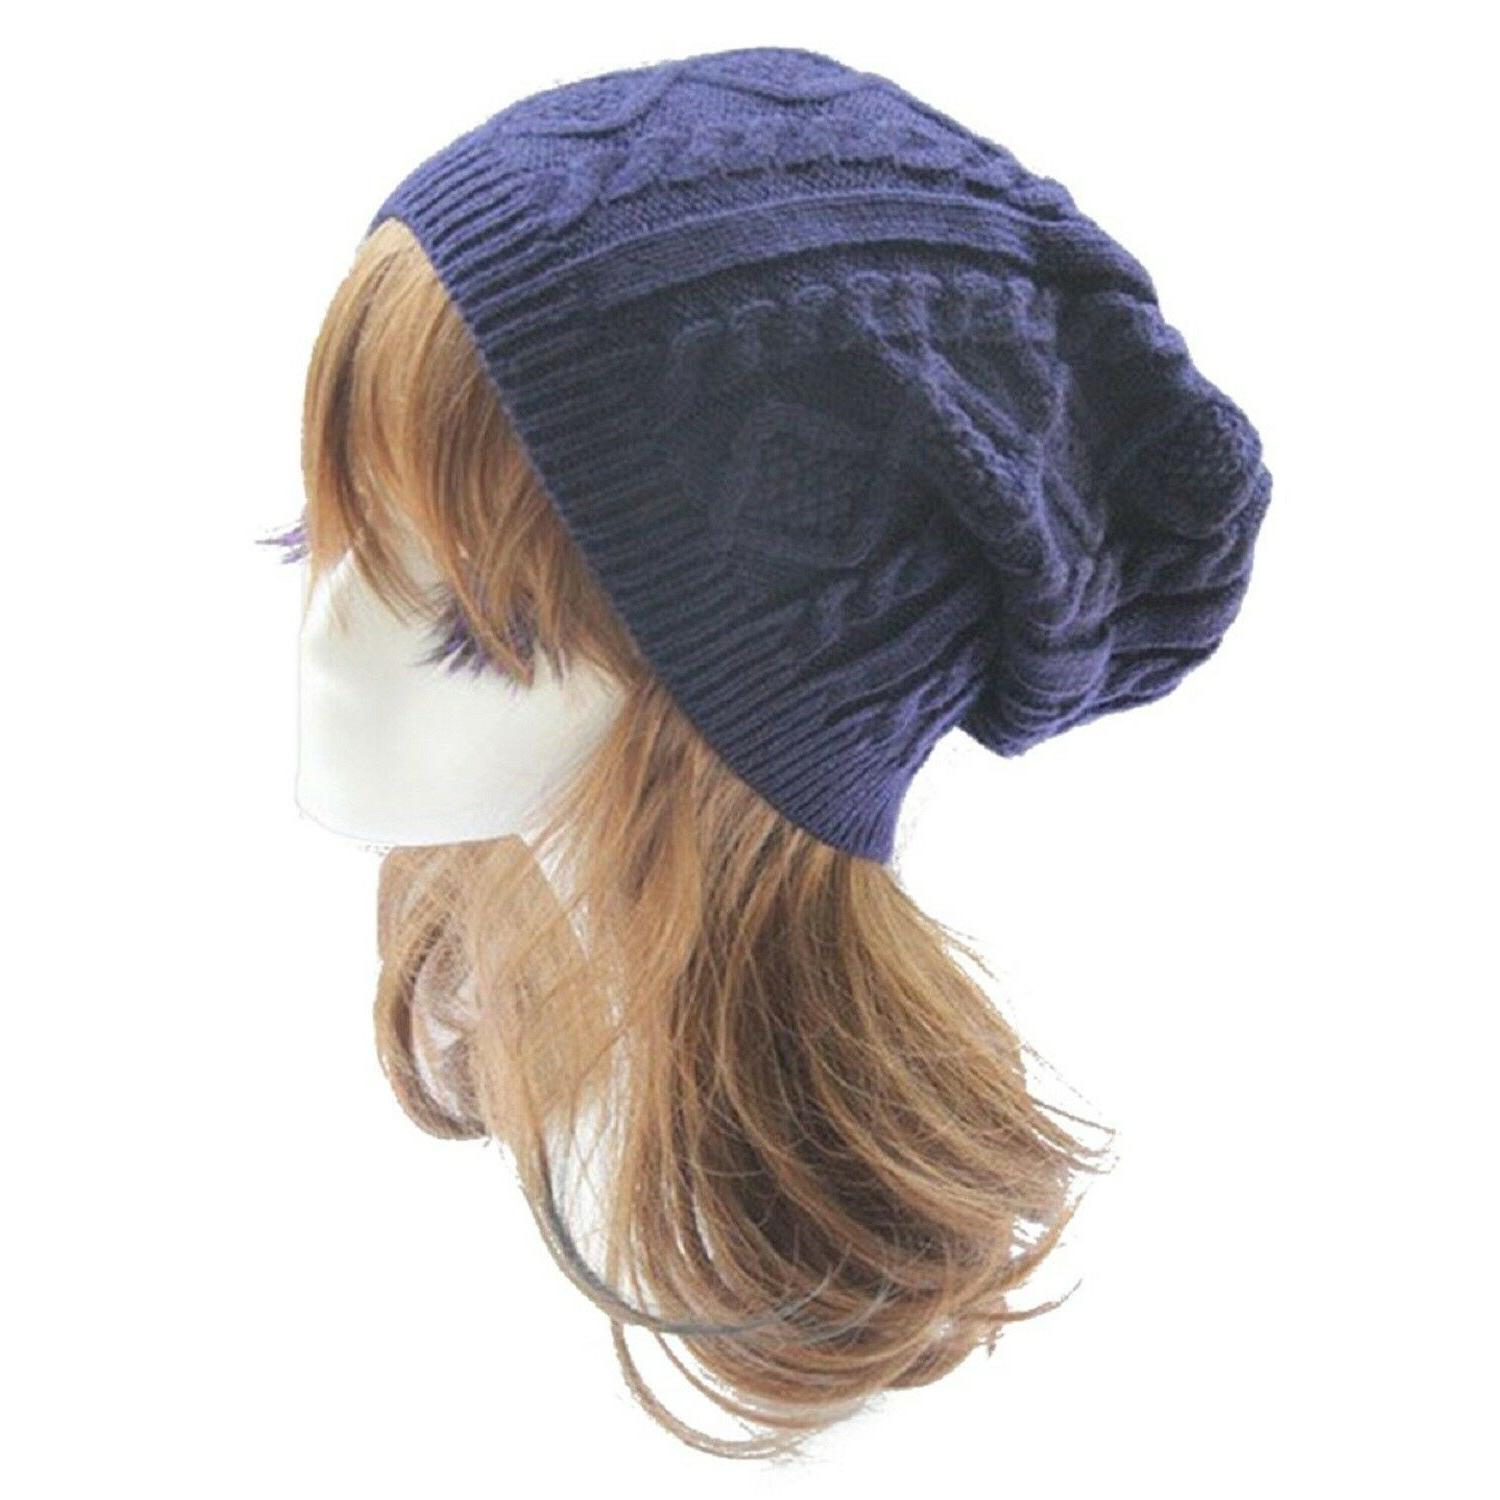 Black Knit Slouchy Hats Caps Accessories